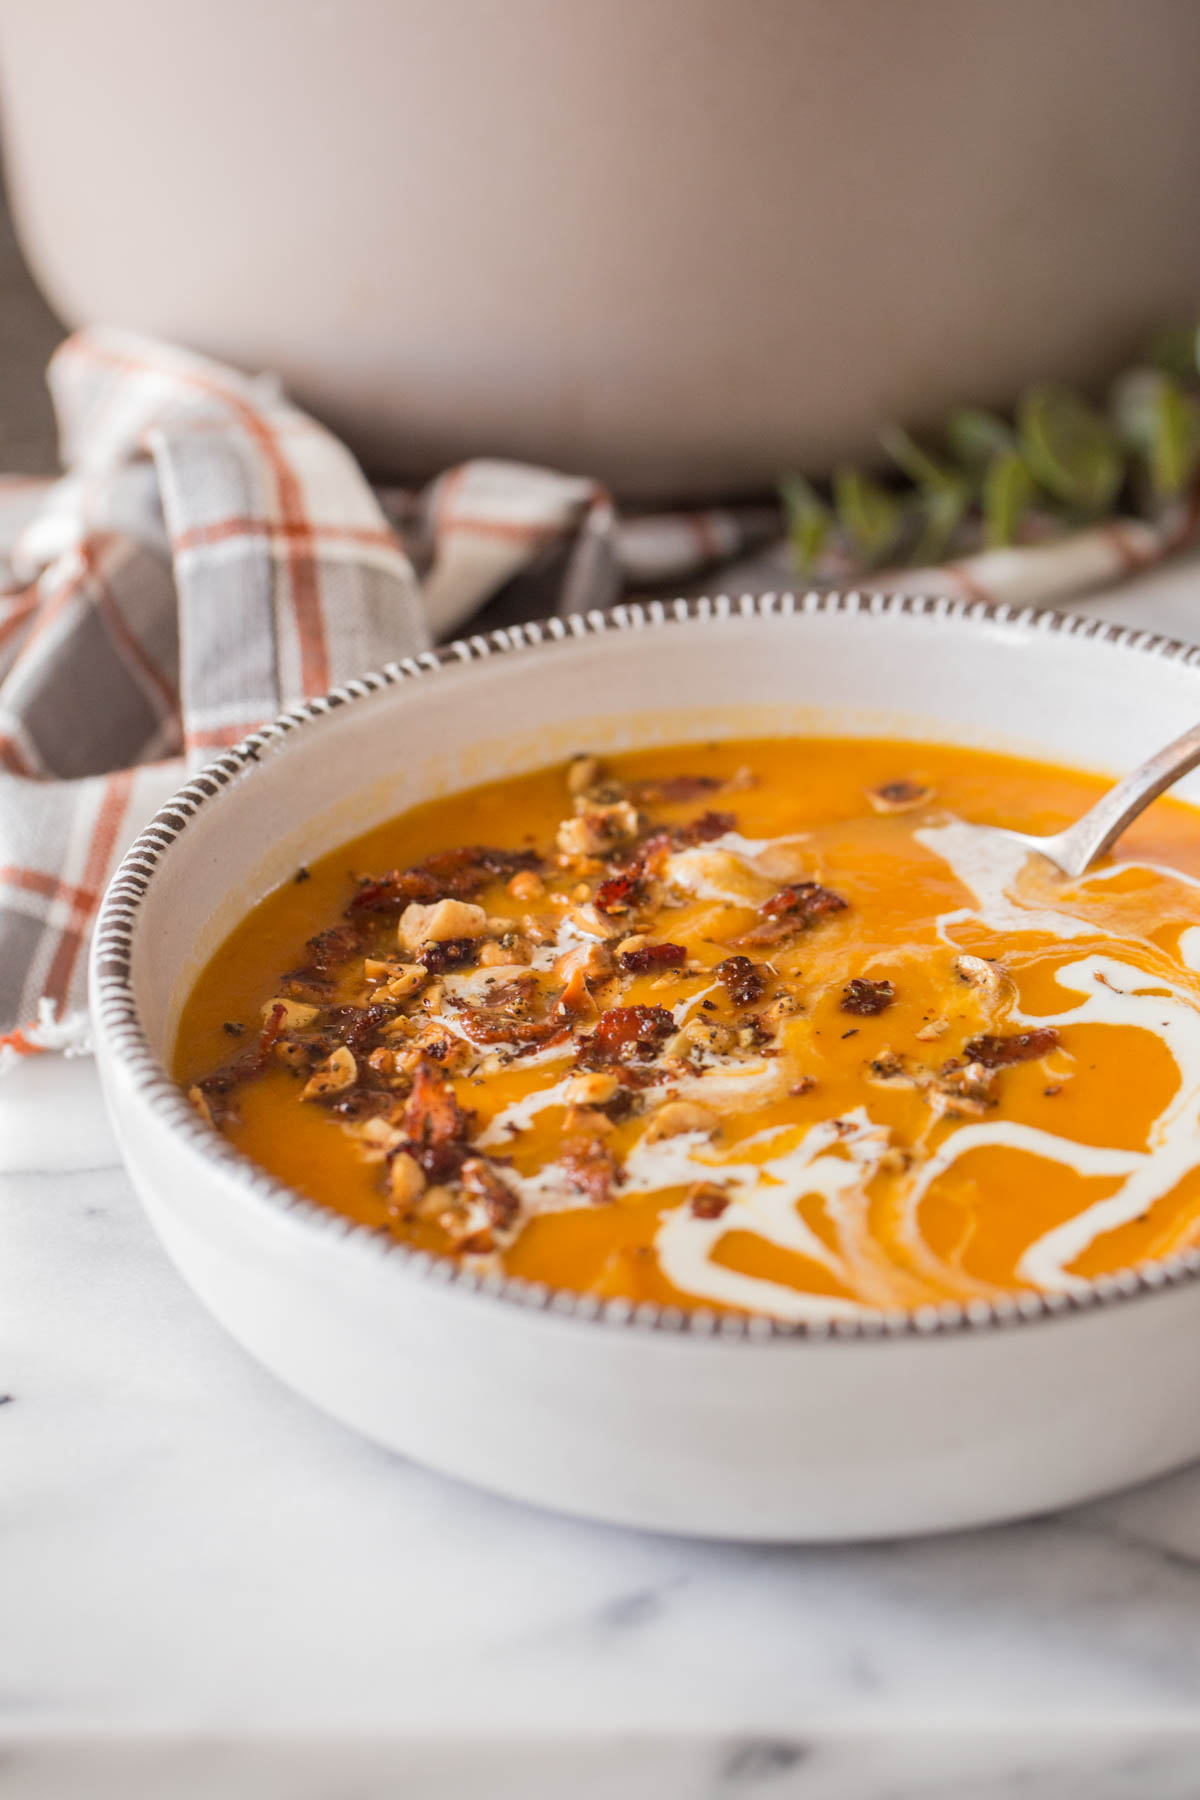 Roasted butternut squash and sweet potatoes, onions, bacon, sage, toasted hazelnuts and a delicate drizzle of heavy cream. This soup is downright luxurious.